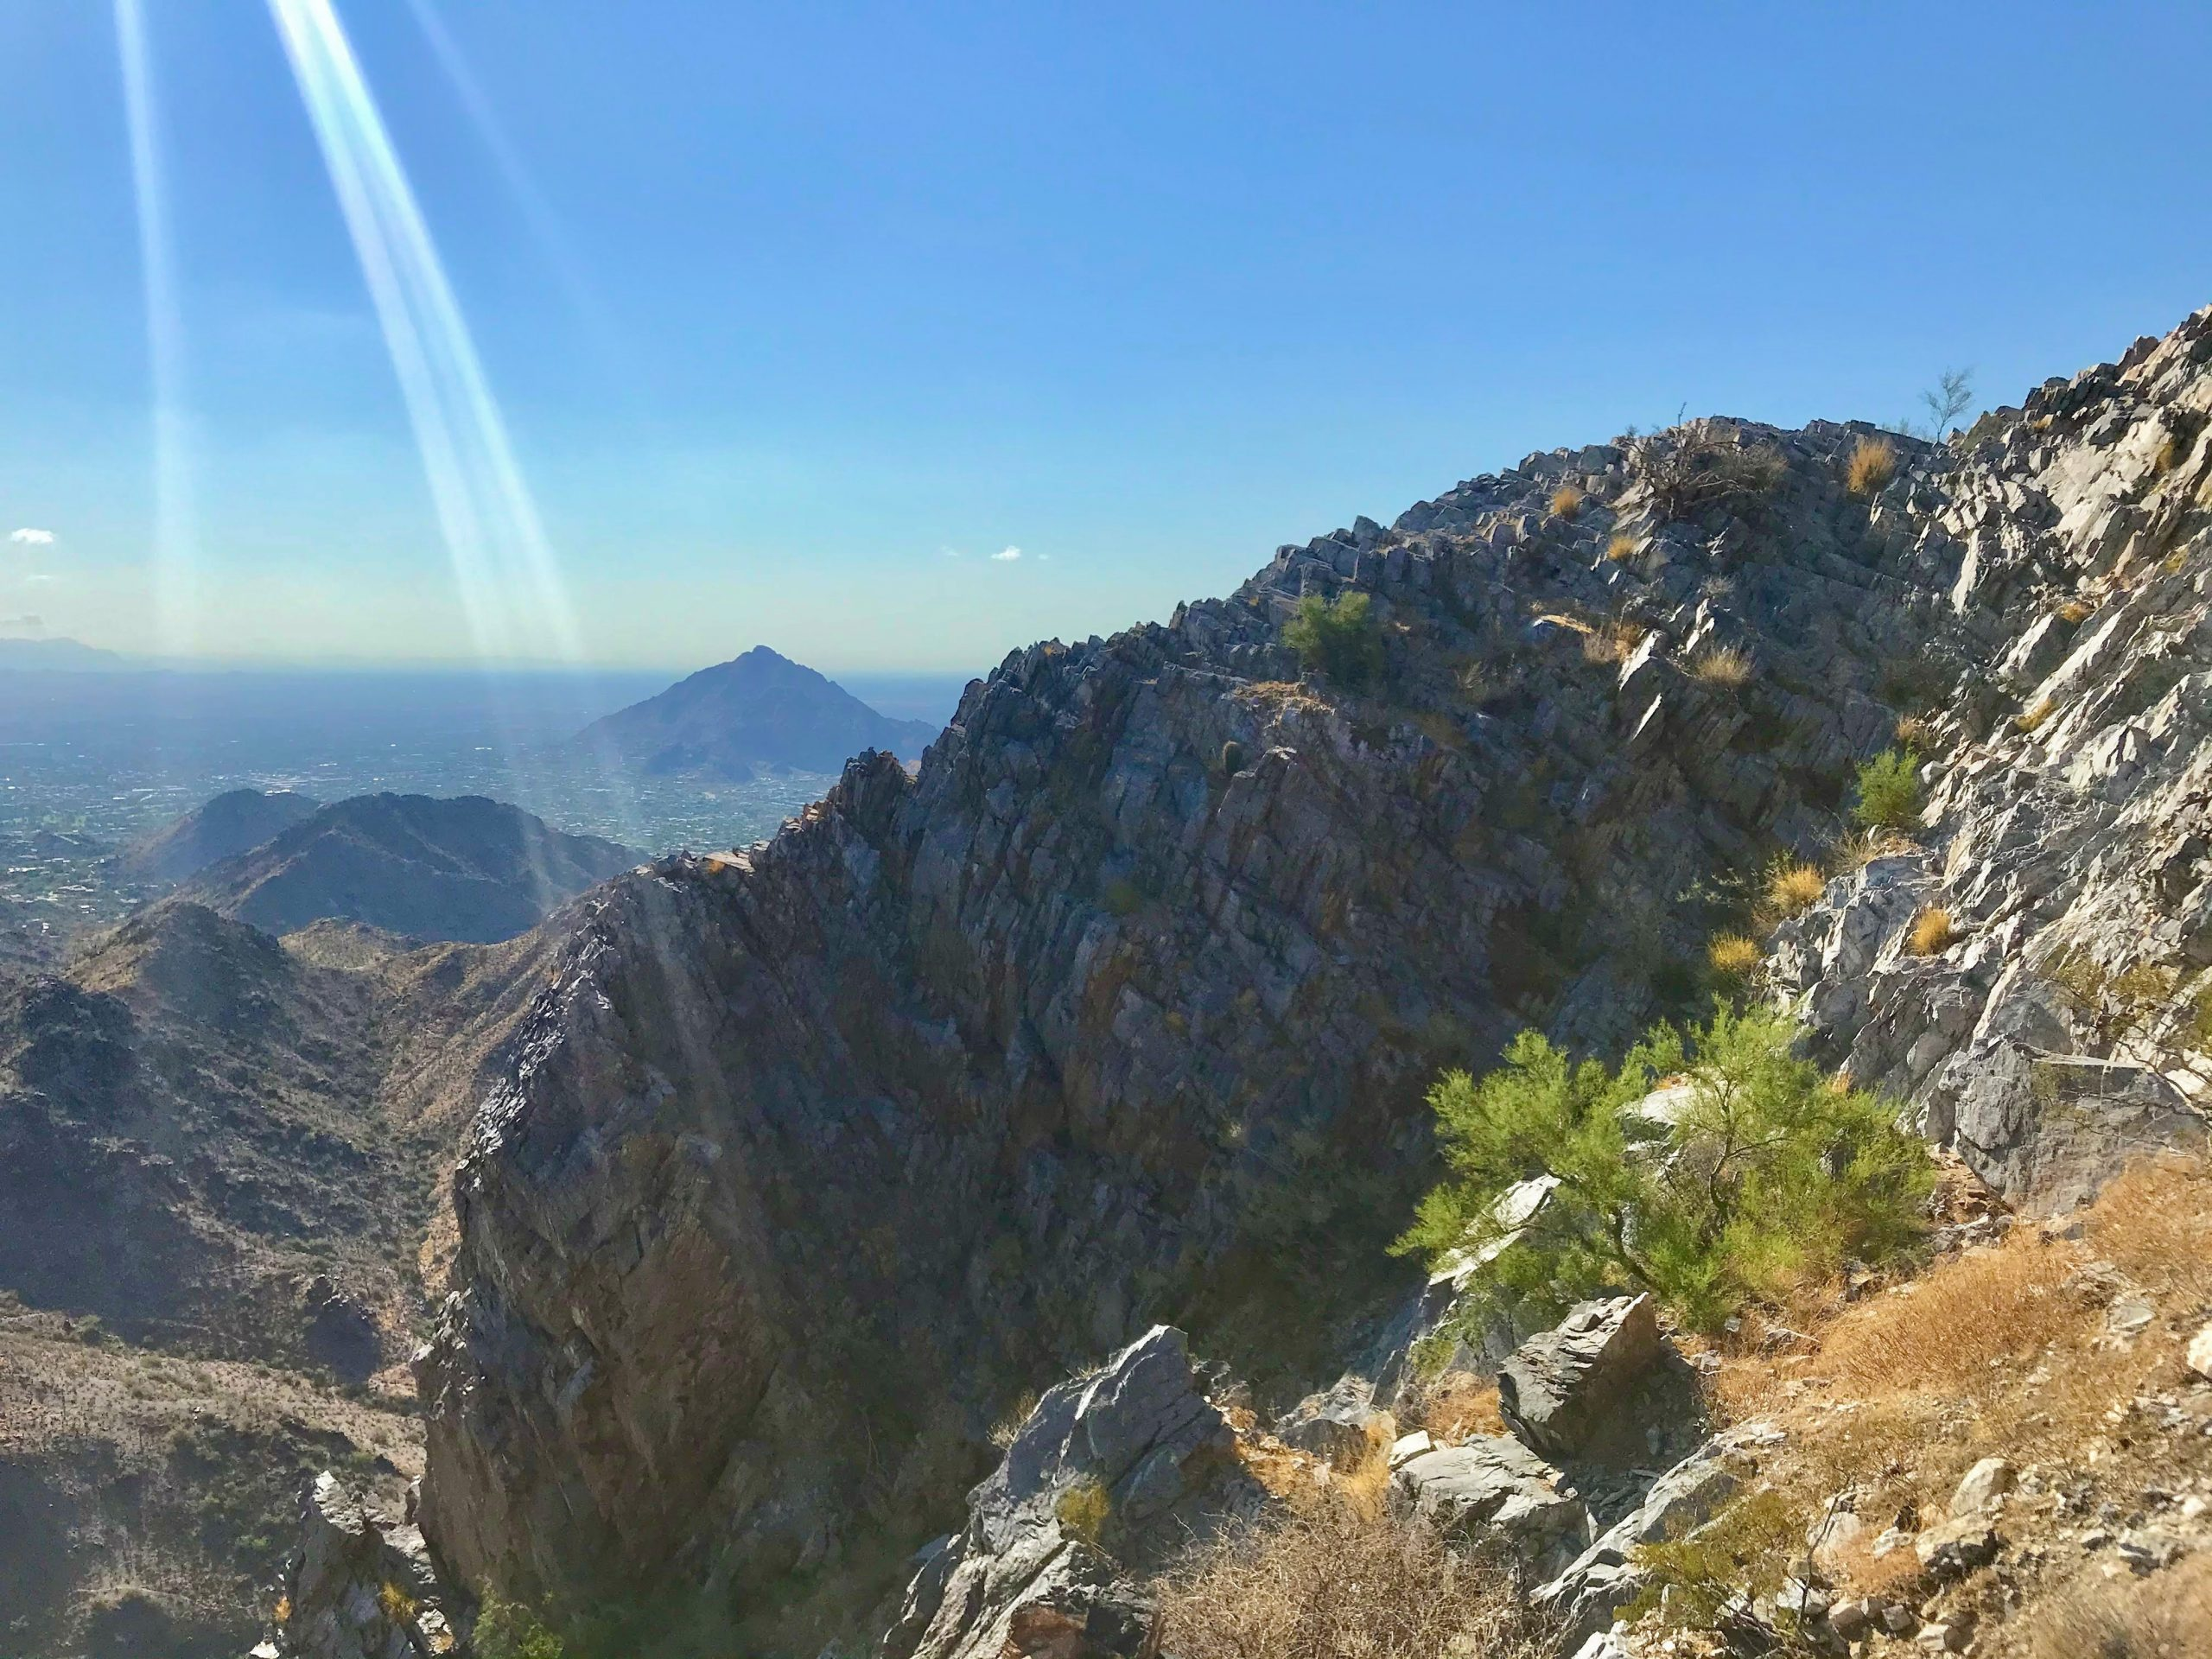 Piestewa vs Camelback? Which should you hike? Camelback from Piestewa